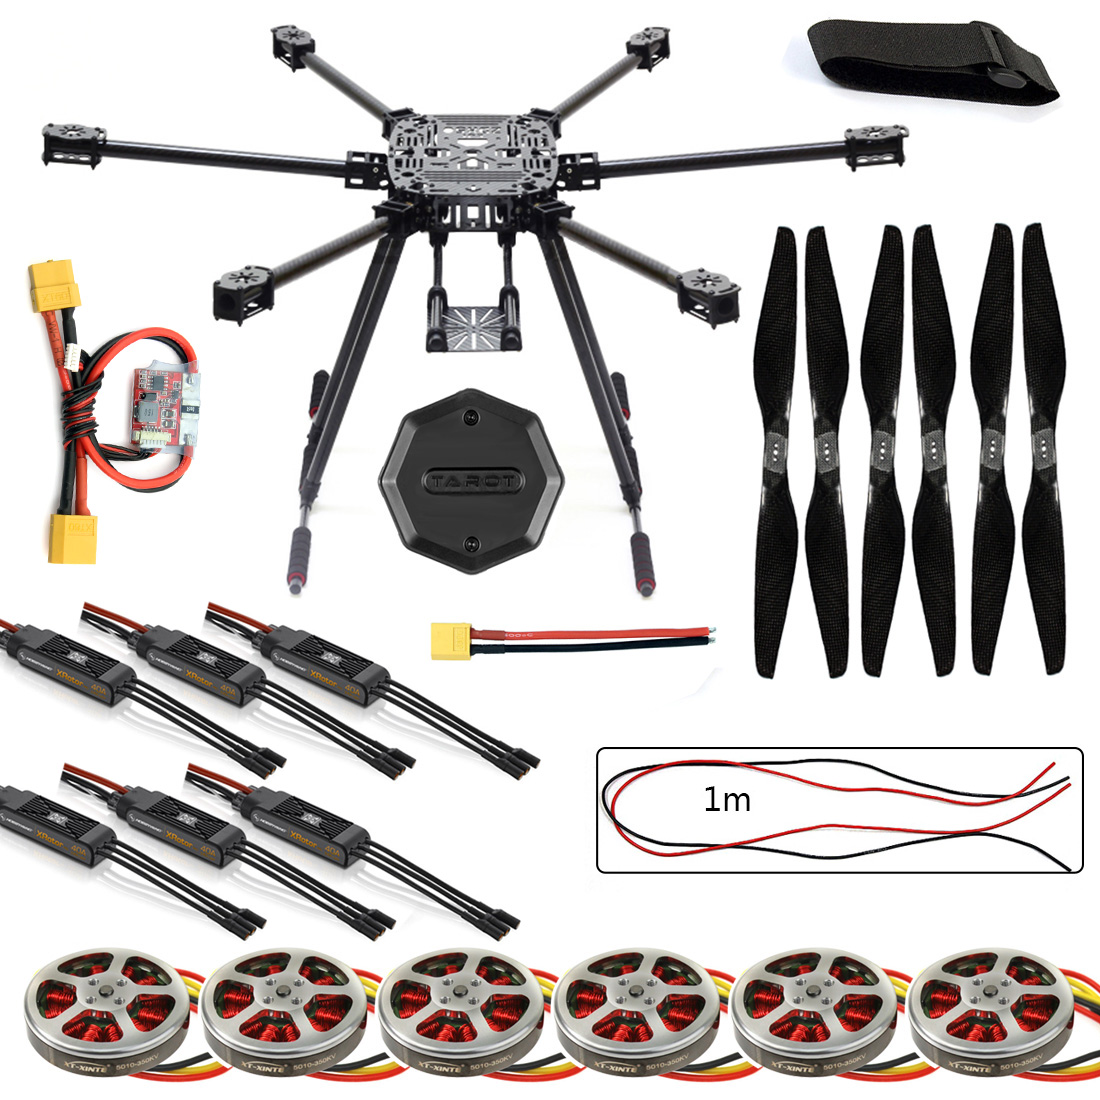 ZD850 Frame Kit with Landing Gear +Hub 350KV Brushless Motor 40A ESC 1555 Propellers RC DIY FPV Aircraft Hexacopter F19833-E zd850 full carbon fiber frame kit with unflodable landing gear foldable arm 6 axle hub set for diy fpv aircraft hexacopter